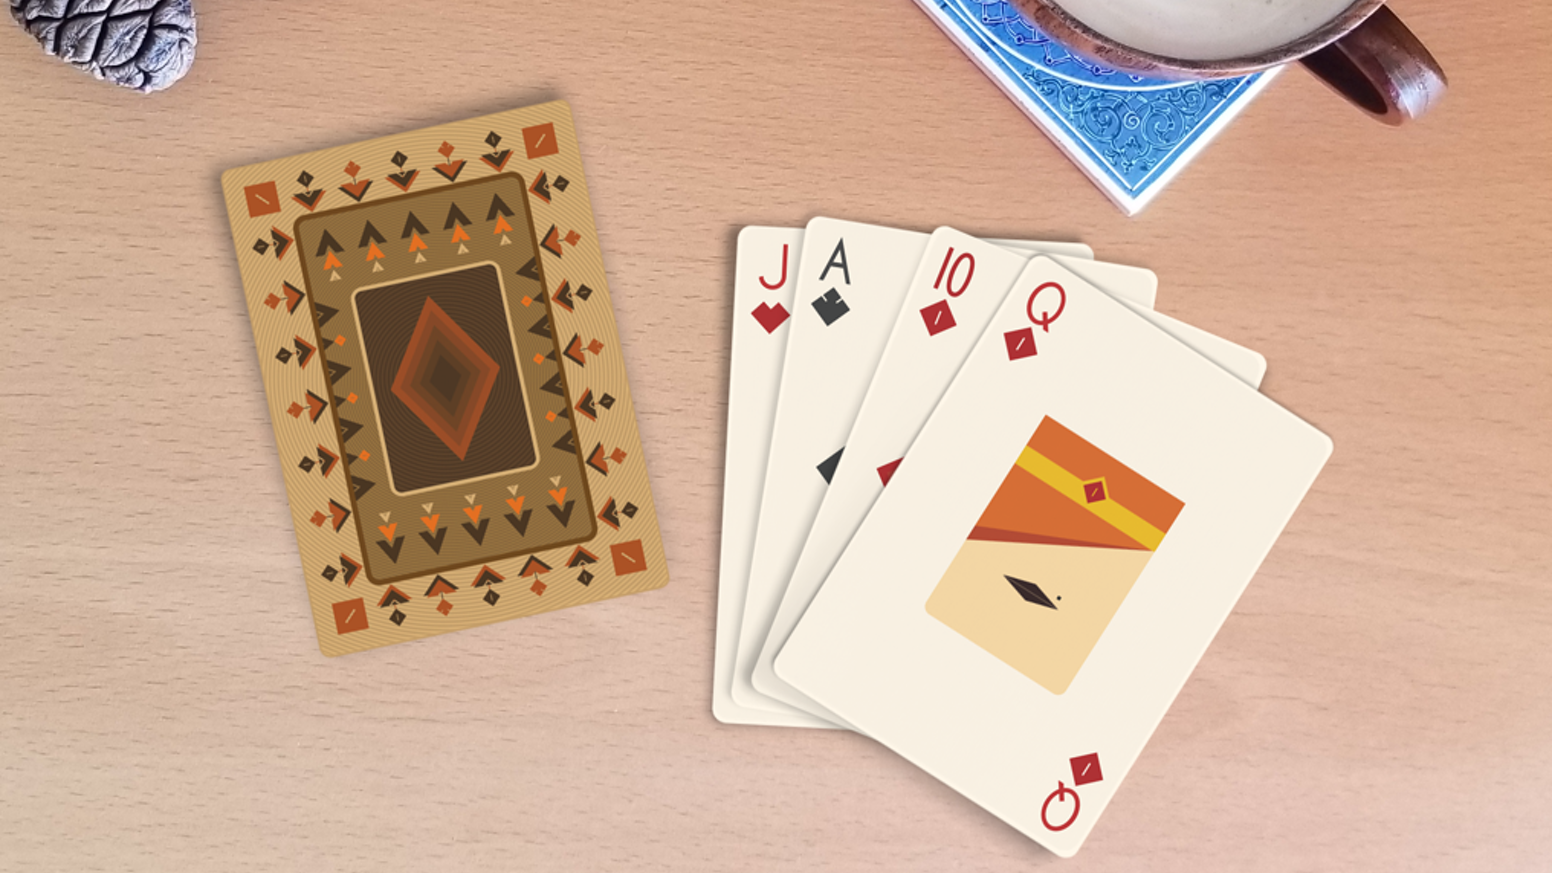 A minimalist deck of playing cards by Siavash Mortazavi & Expert Playing Card Co.